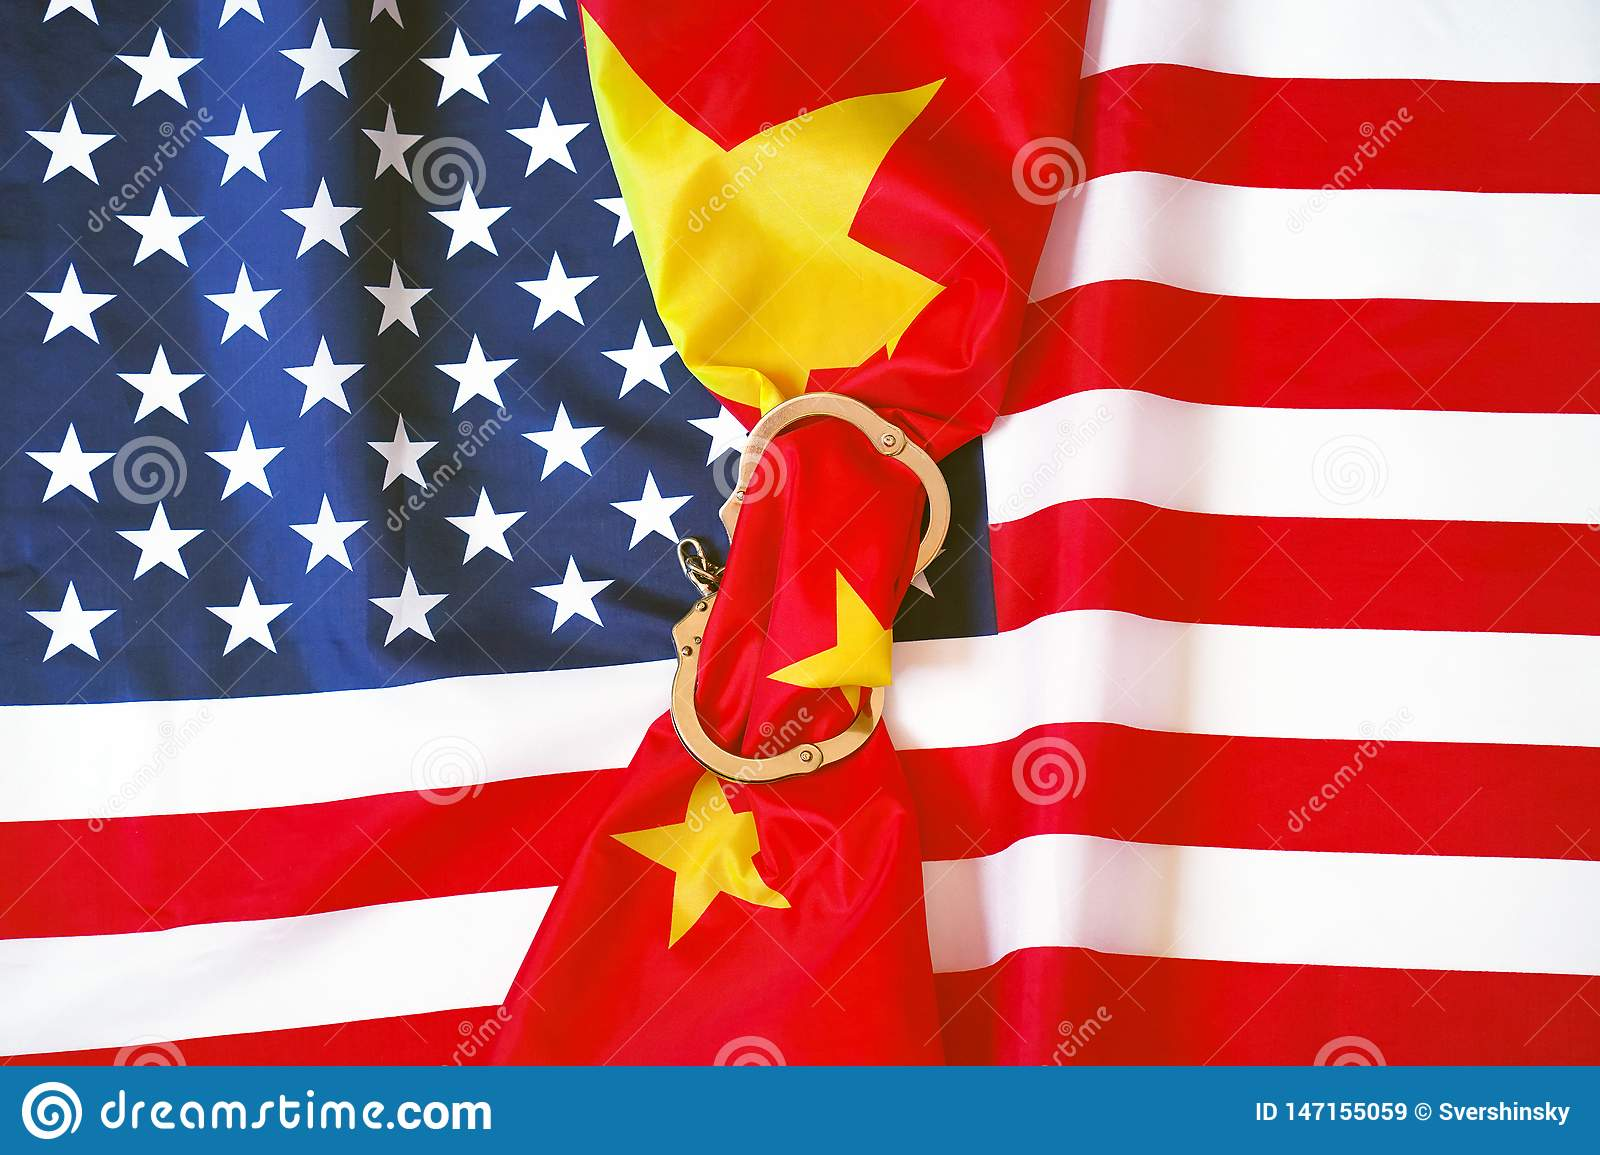 American flag. The concept of sanctions for China